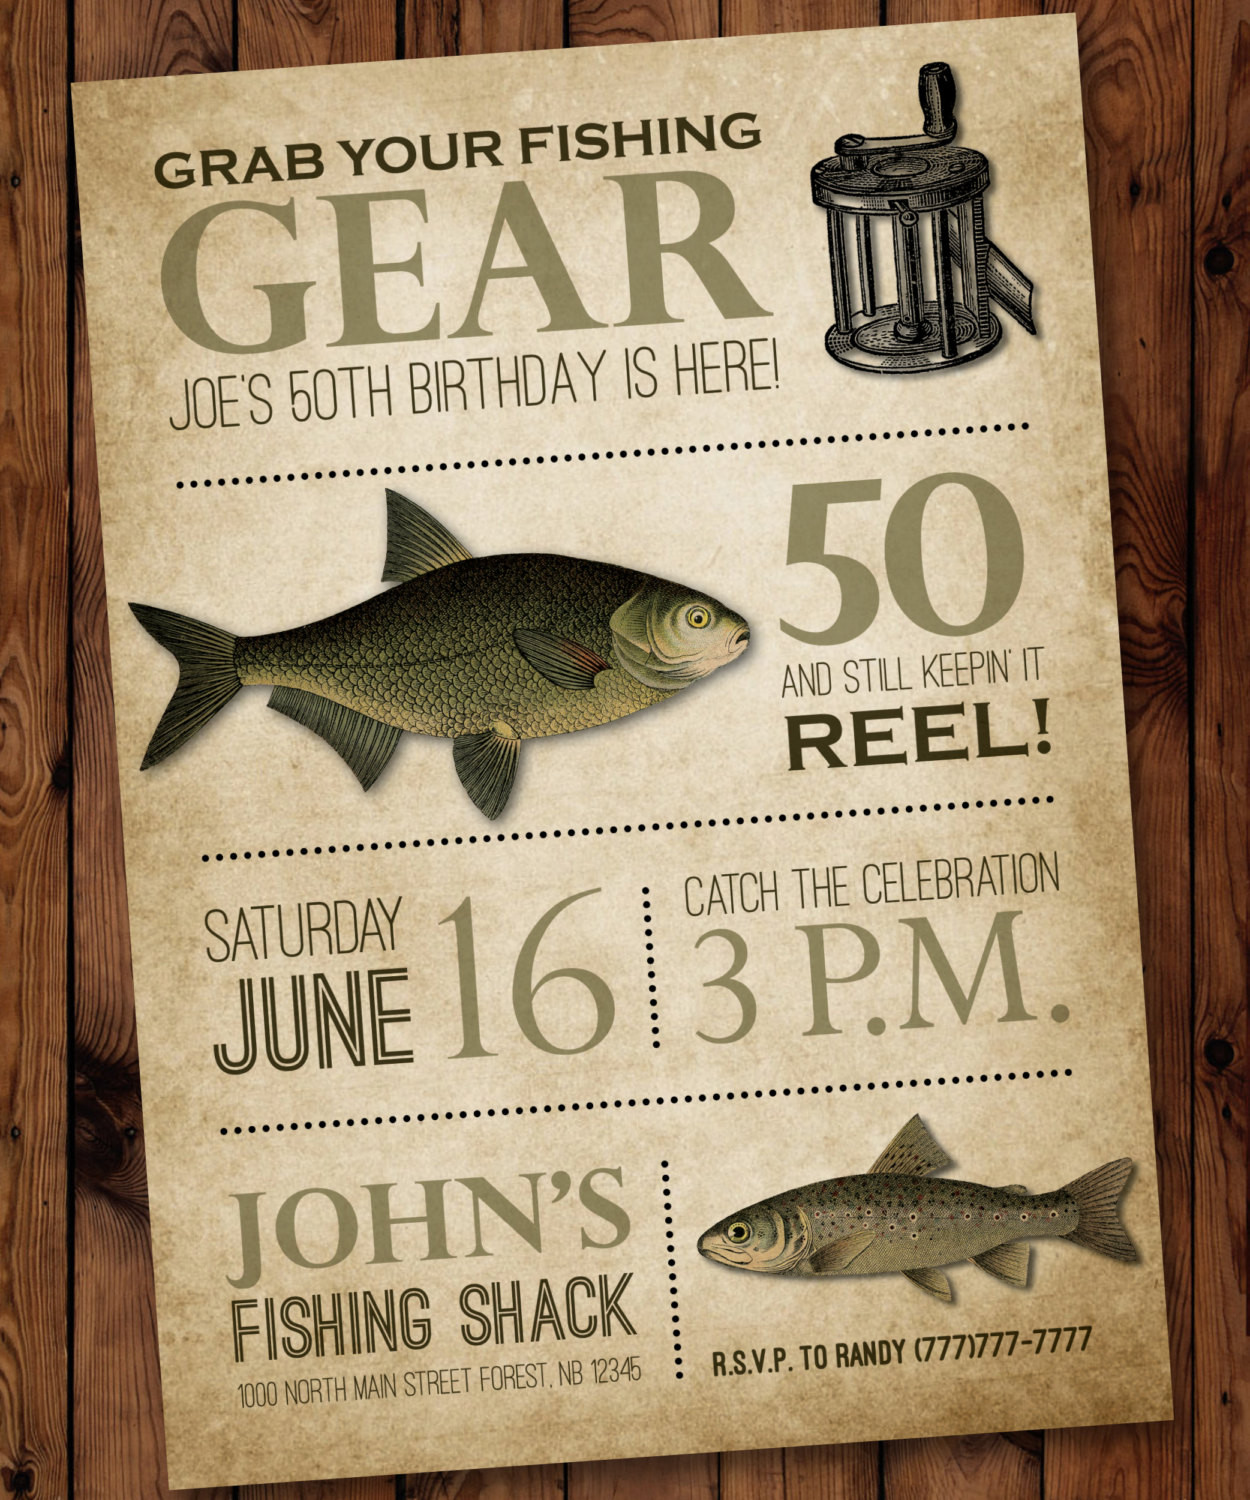 Best ideas about Fishing Birthday Invitations . Save or Pin Fishing Birthday Invitation Male Birthday Invitation Fishing Now.